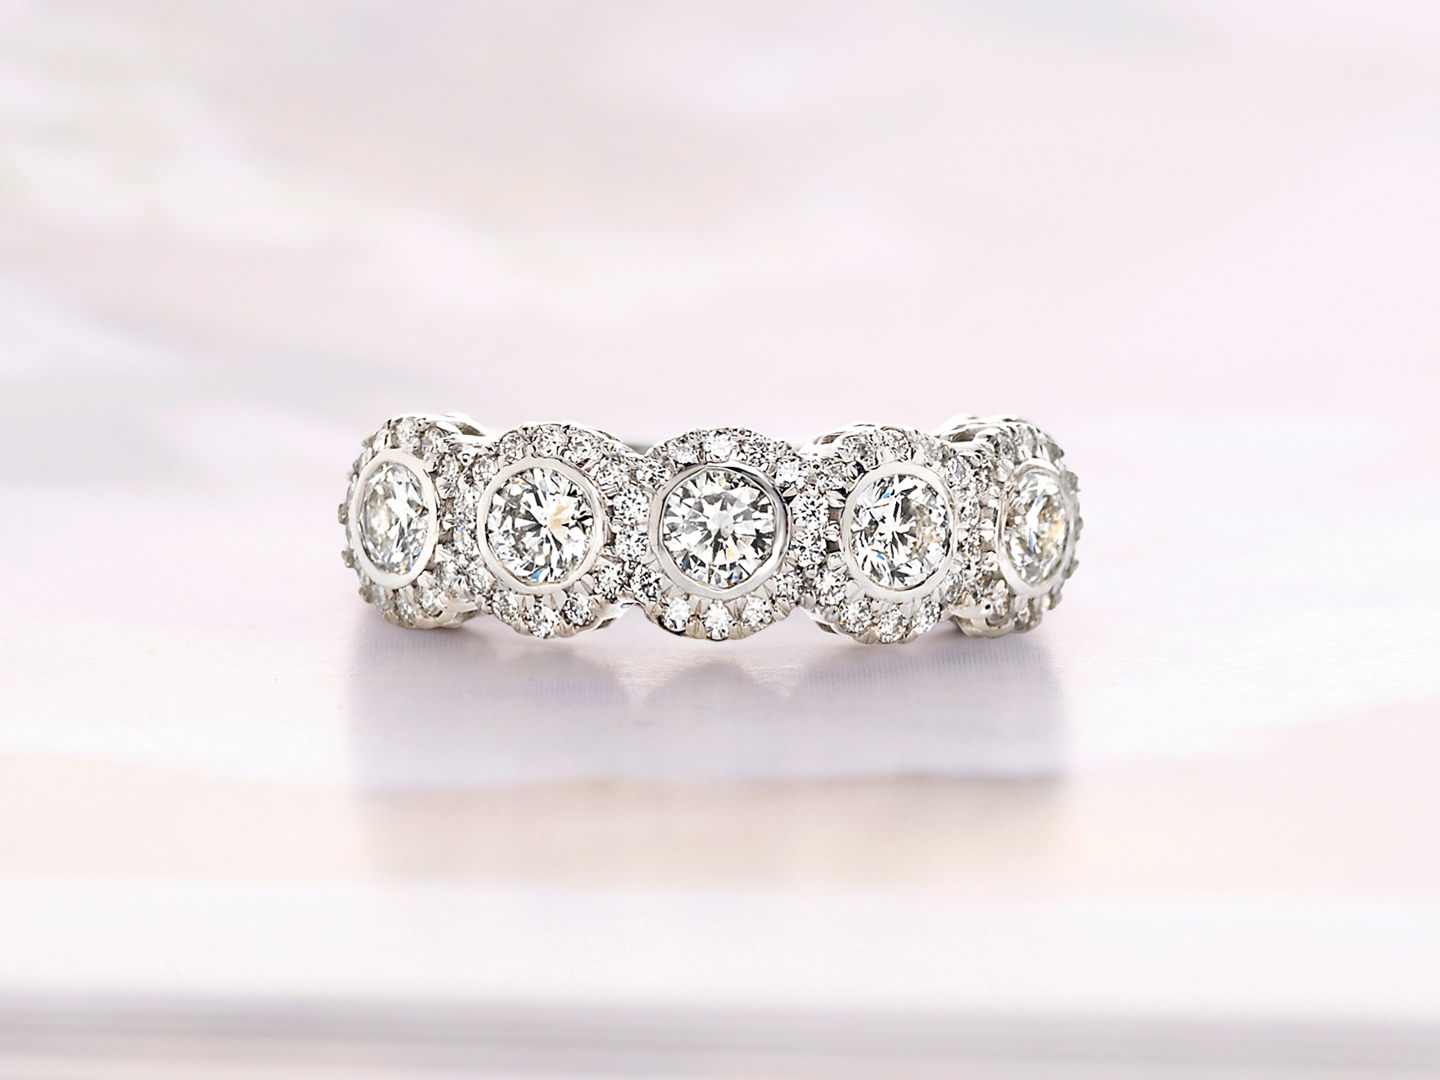 Beautiful Bezel Set Diamond Rings | Brilliant Earth In Most Current Diamond Vintage Style Seven Stone Anniversary Bands In White Gold (View 9 of 25)